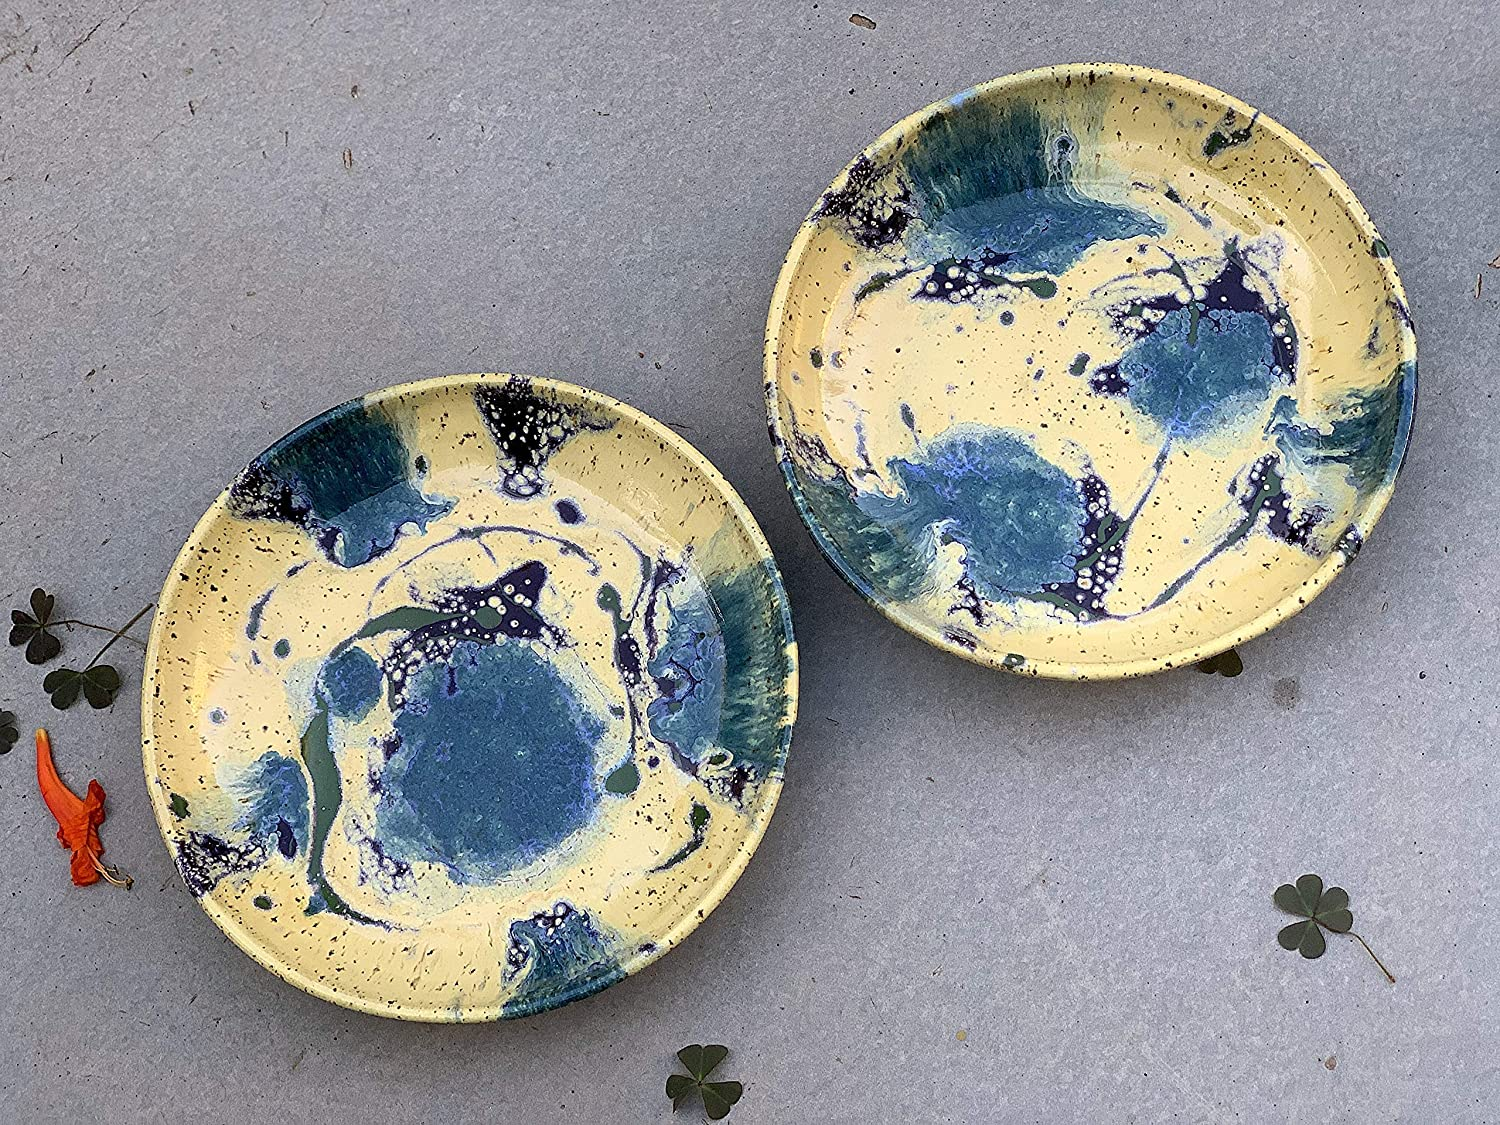 Yellow and Blue Tie Popular Max 68% OFF brand in the world Dye Plate set Clay Kitche of Art Handmade 2